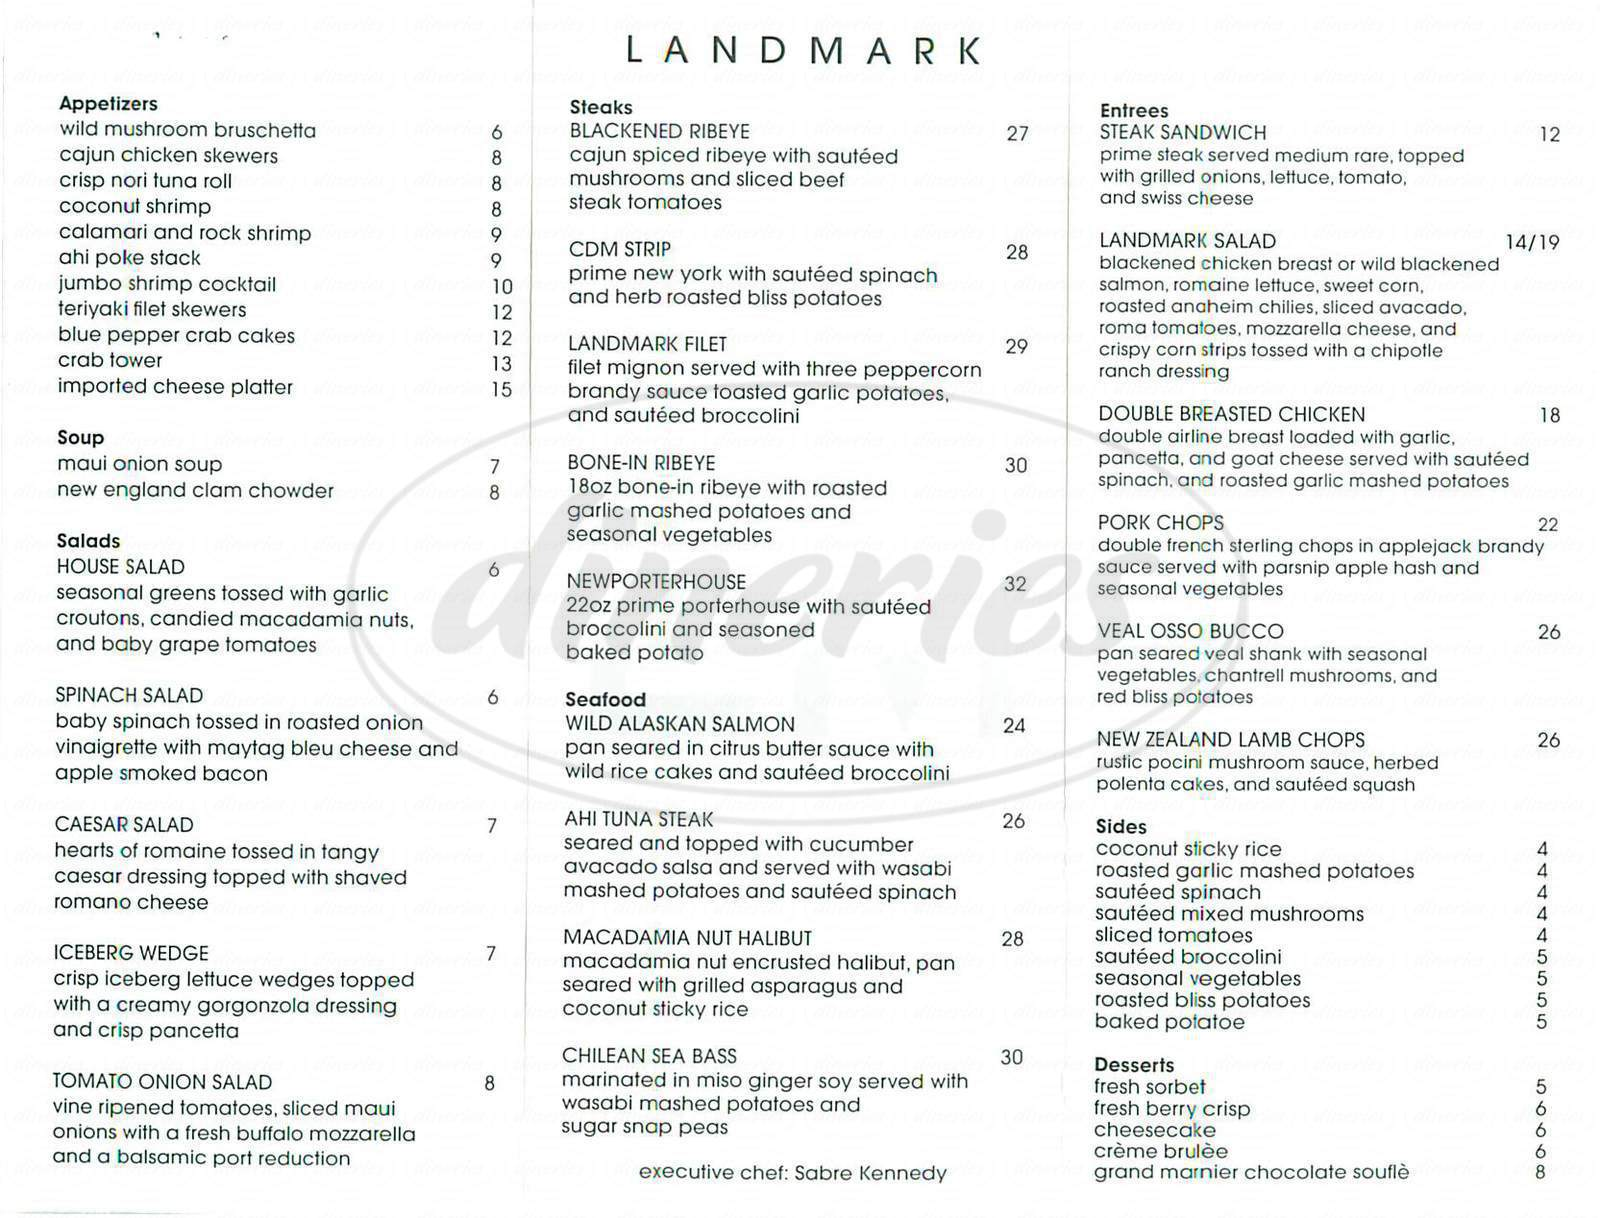 menu for Landmark Steakhouse